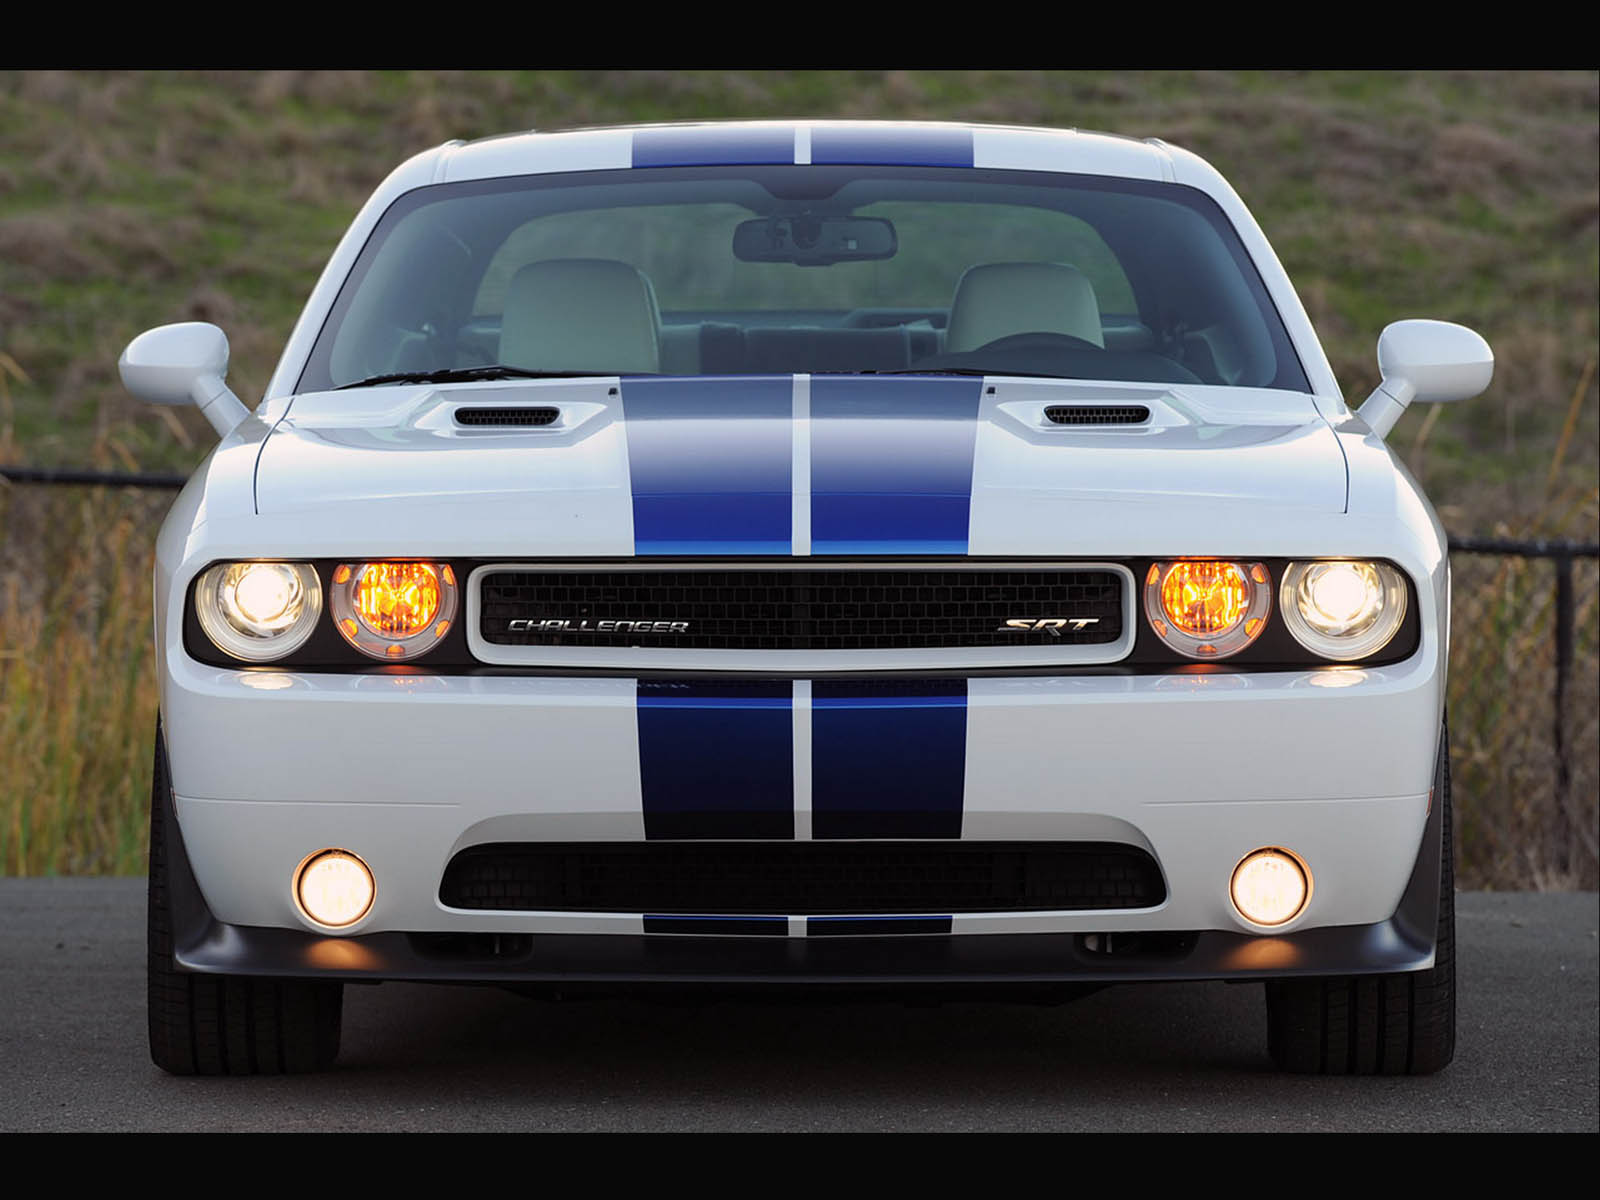 the dodge challenger srt8 car wallpapers dodge challenger srt8 1600x1200